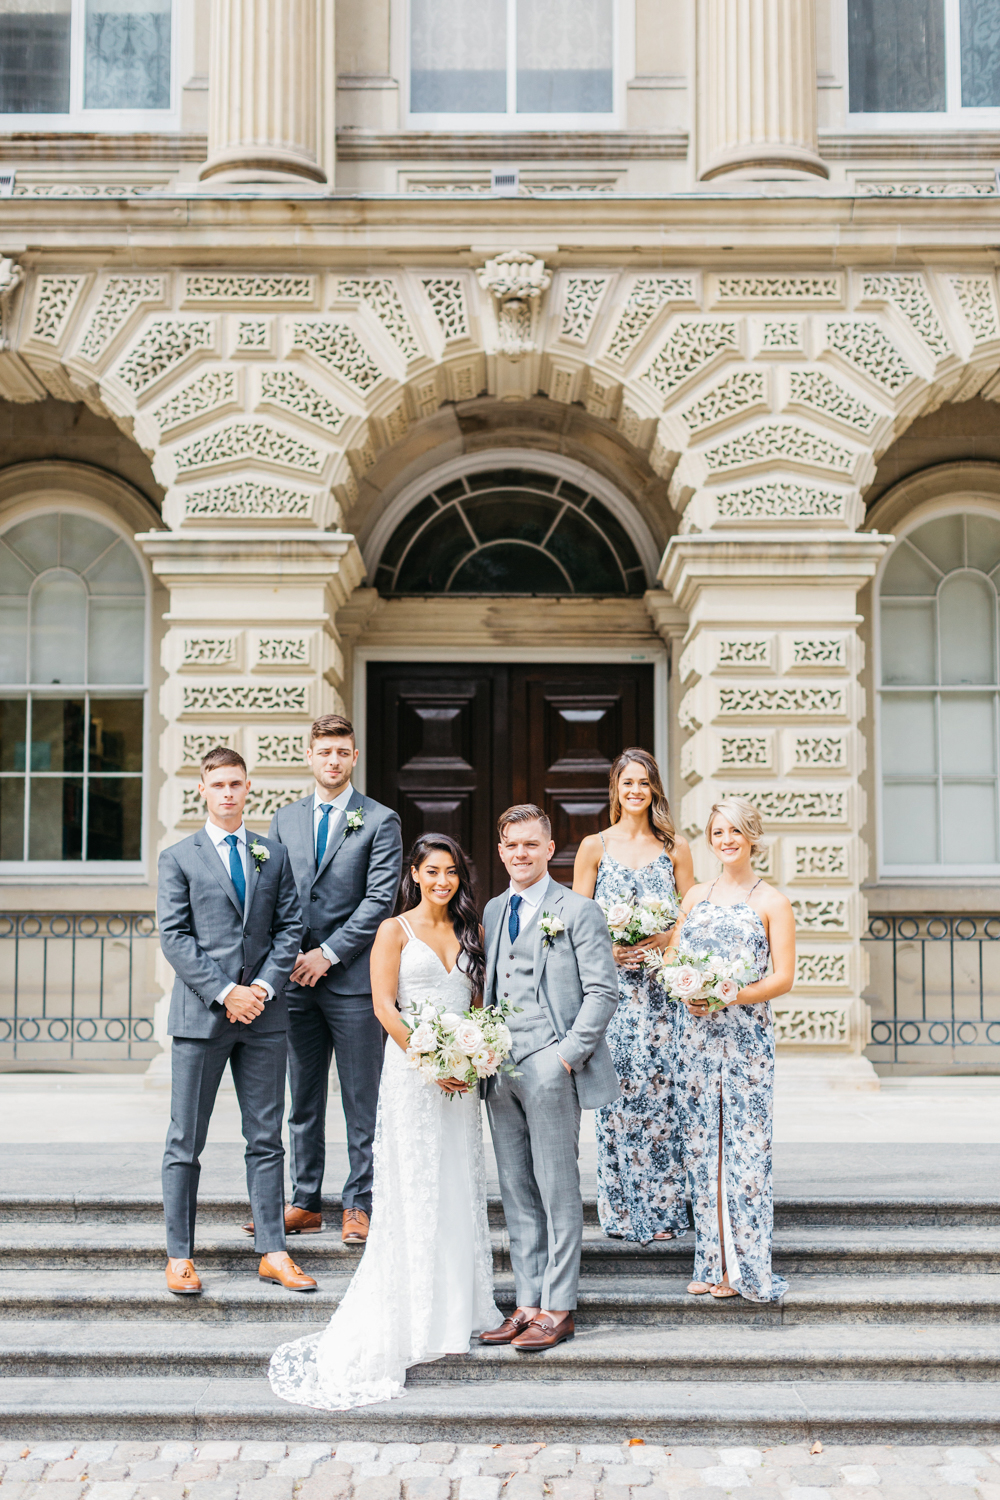 Bride and groom posing with bridal party as Osgoode hall